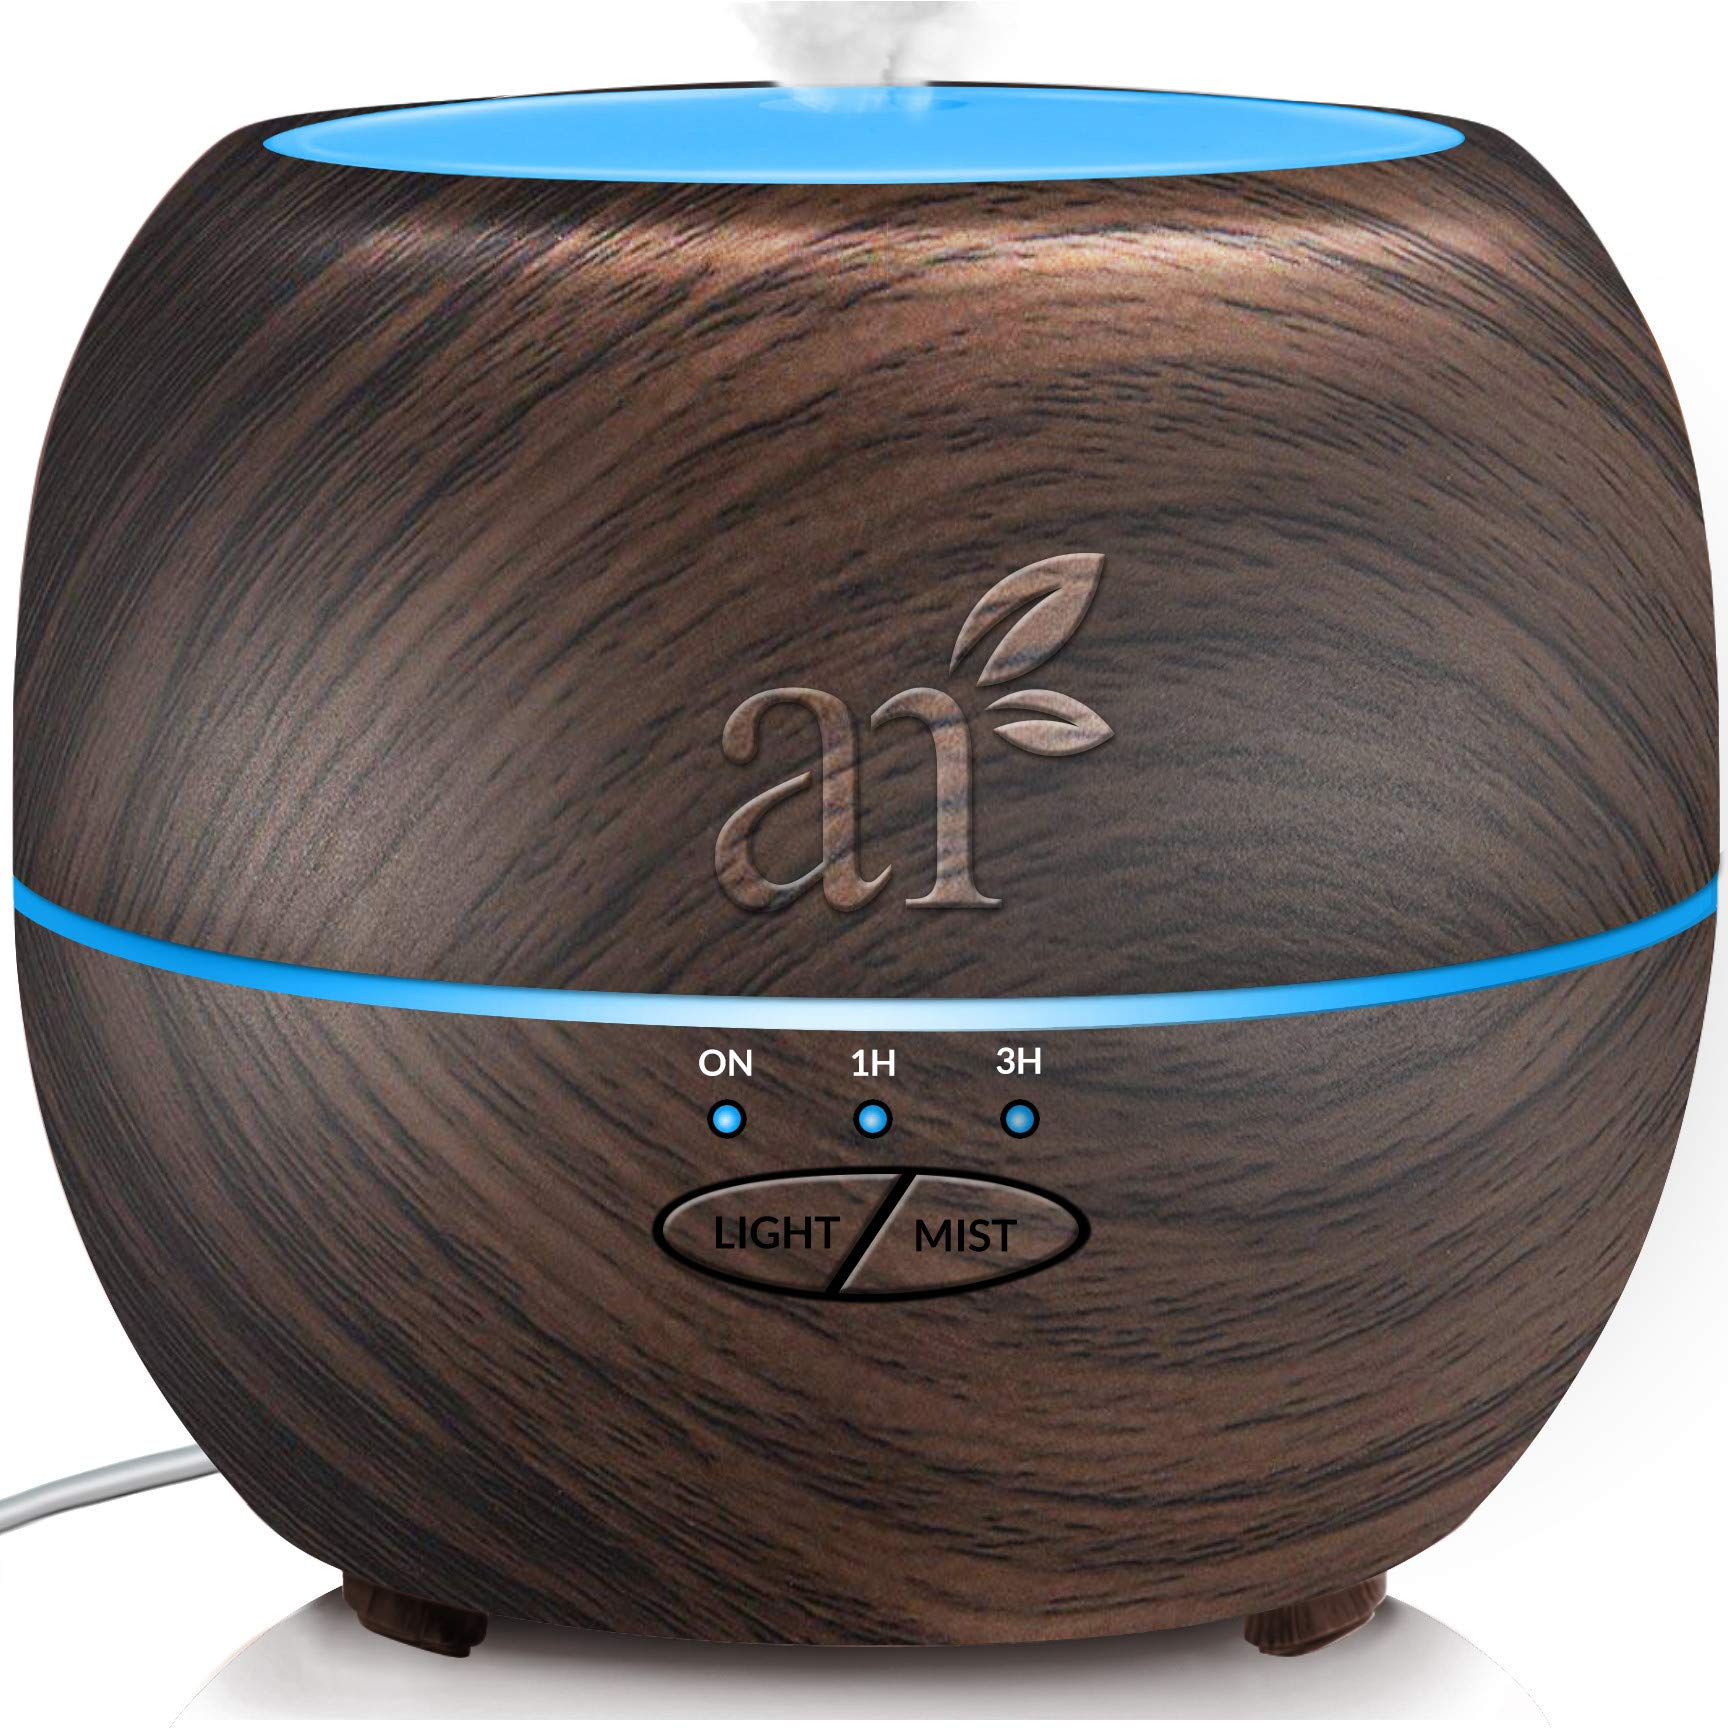 ArtNaturals Aromatherapy Essential Oil Diffuser – (13.5 Fl Oz / 400ml Tank - Dark Brown) – Ultrasonic Aroma Humidifier - Auto Shut-Off and 7 Color LED Lights – For Home, Office & Bedroom